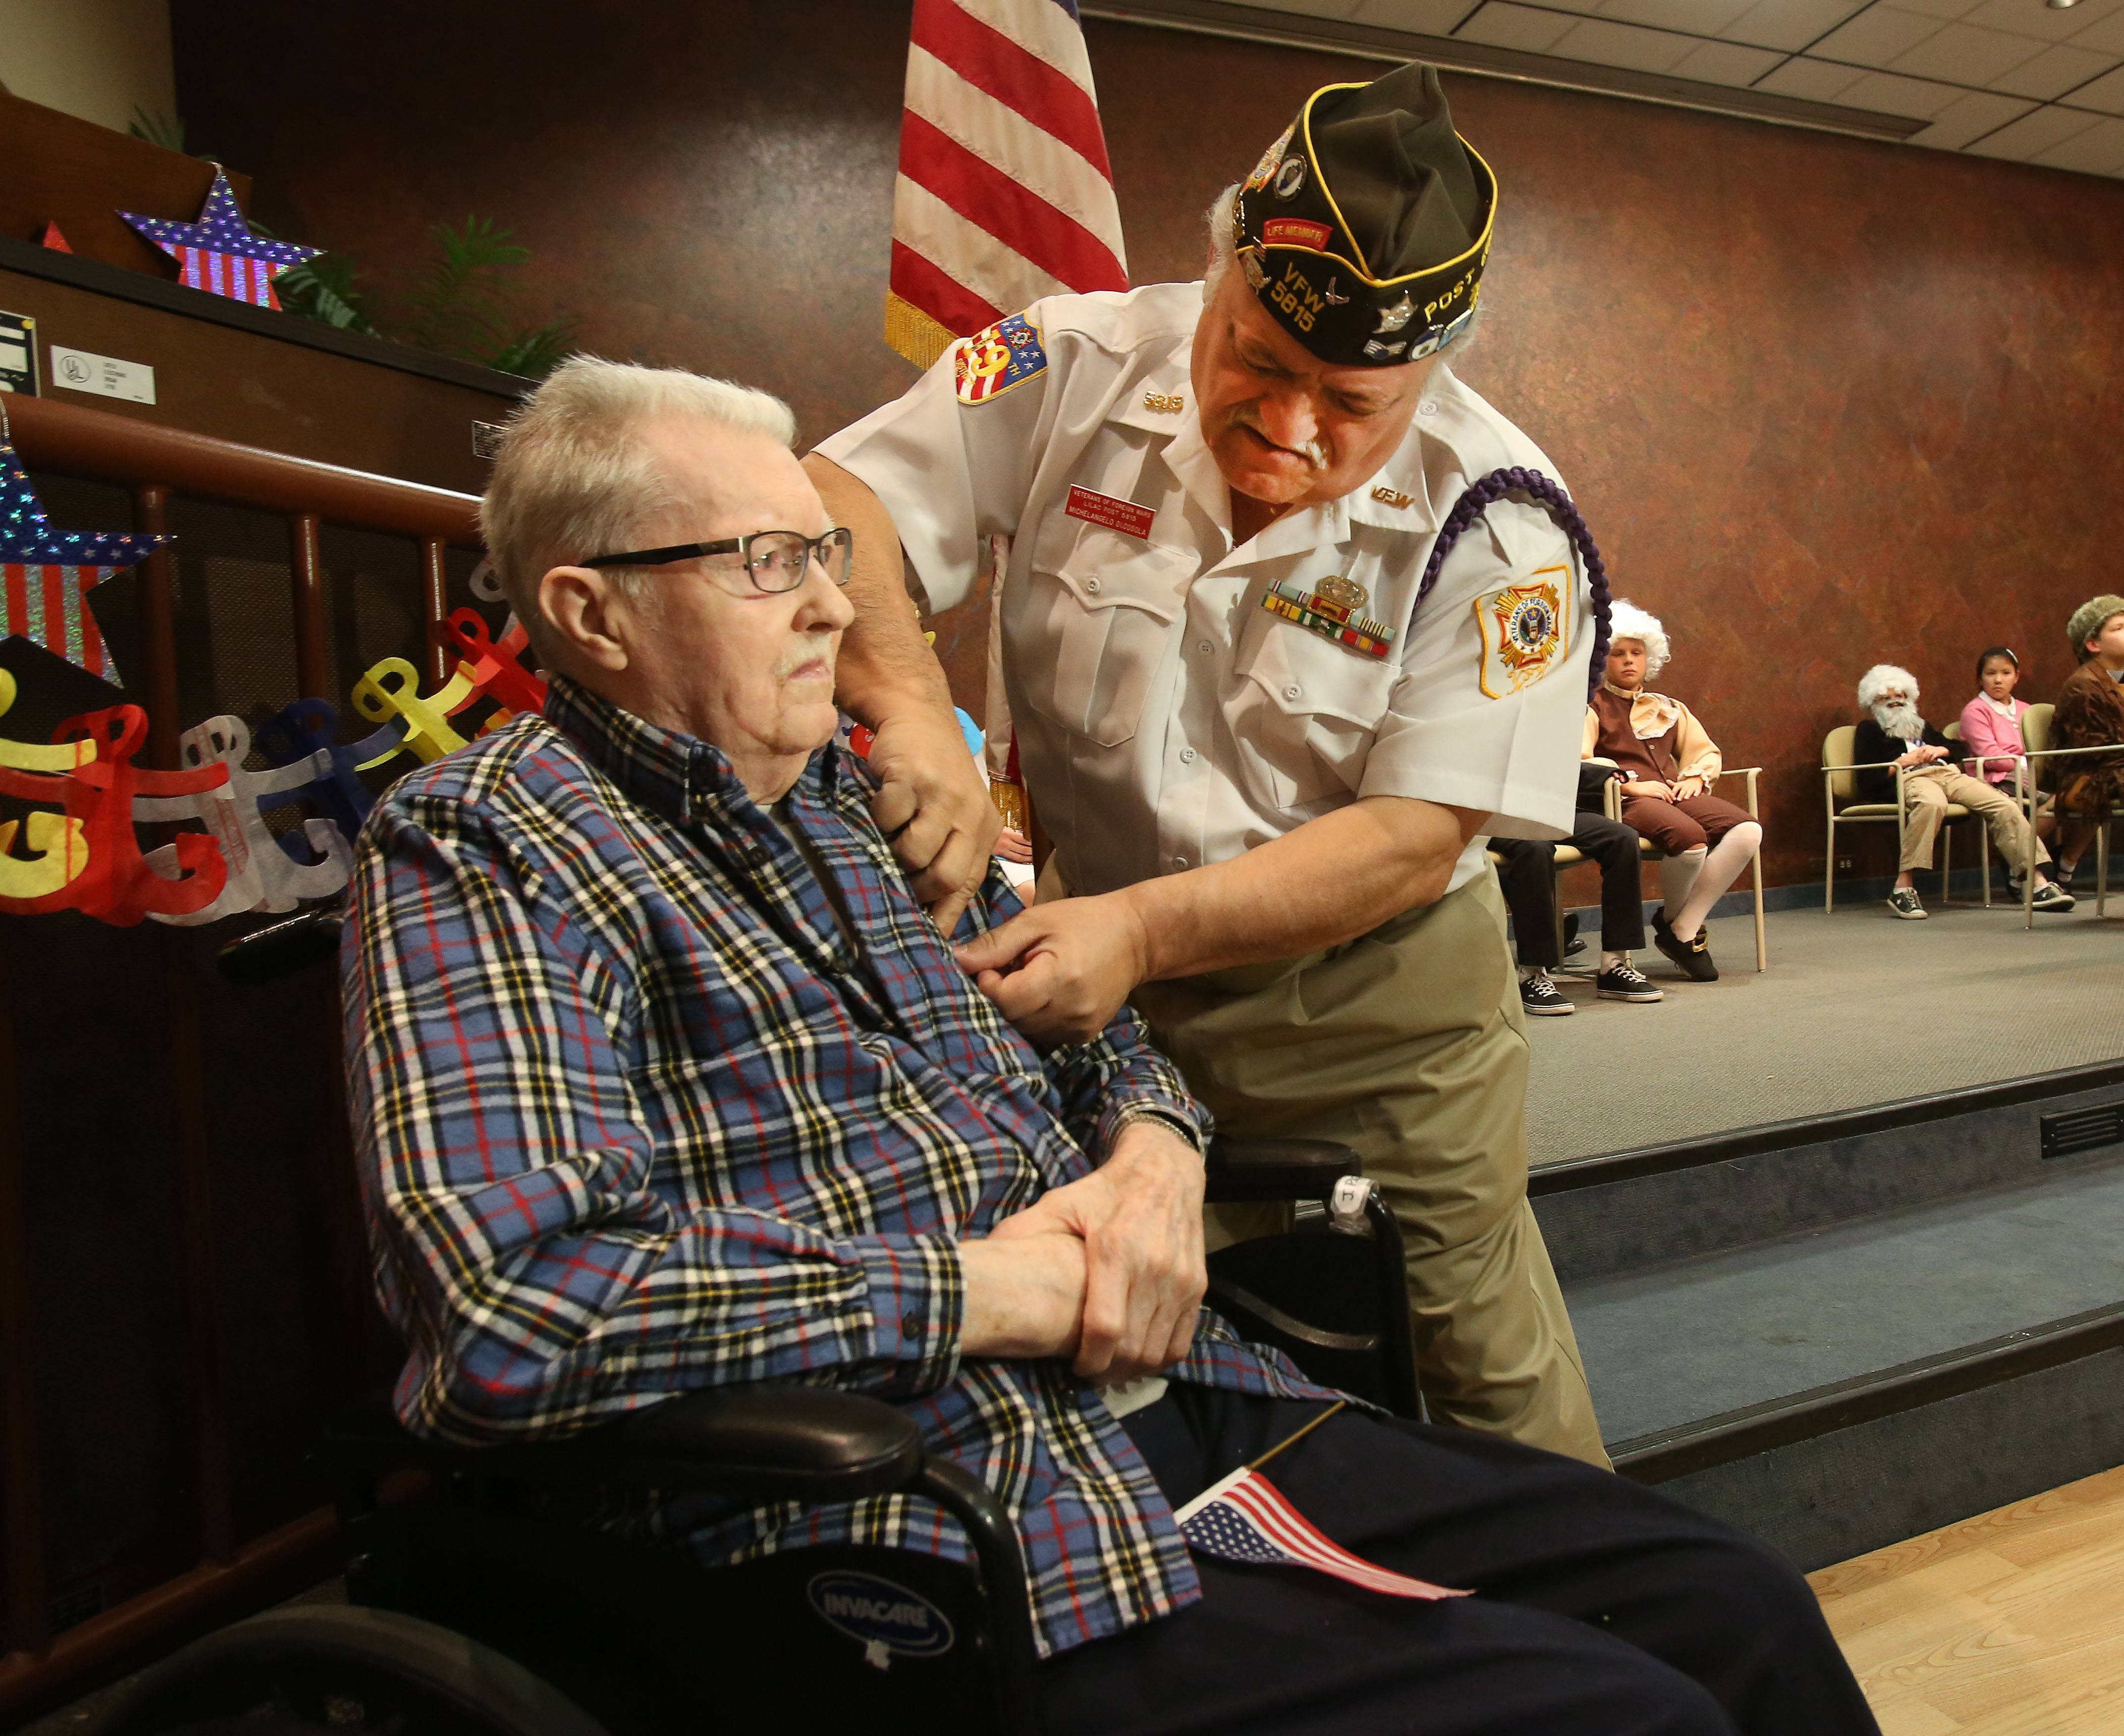 World War II veteran Jim Pfafflin receives medals recognizing his service in the U.S. Merchant Marine from VFW Post 5815 Commander Michelangelo Di Cosola. The medals were presented Friday during a ceremony at the Beacon Hill senior living community in Lombard.